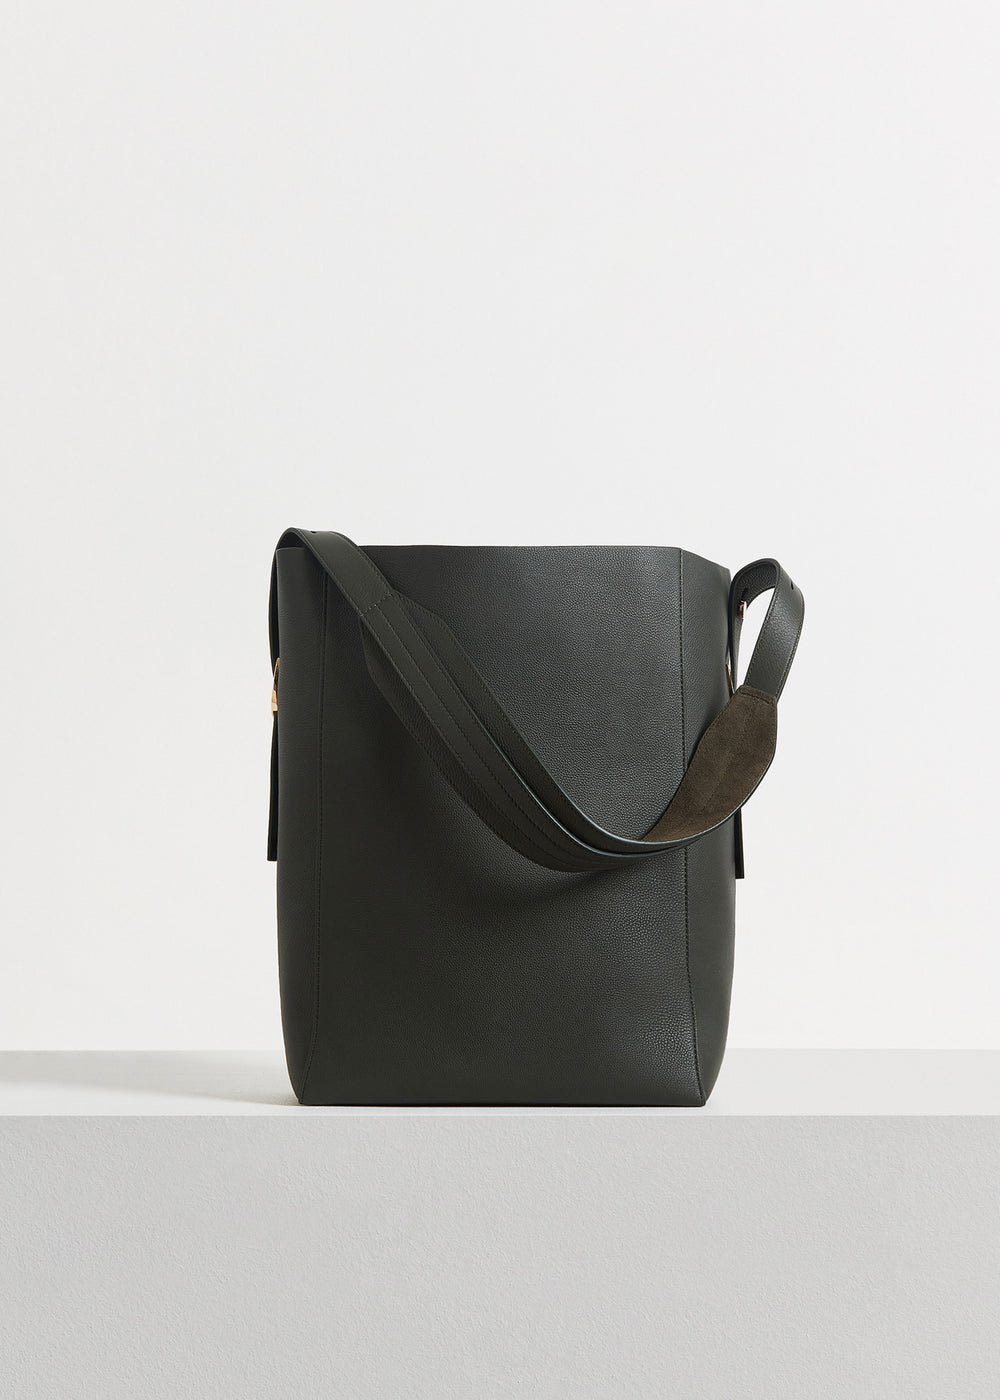 Small Classic Tote in Pebbled Leather - Black in Olive by Co Collections